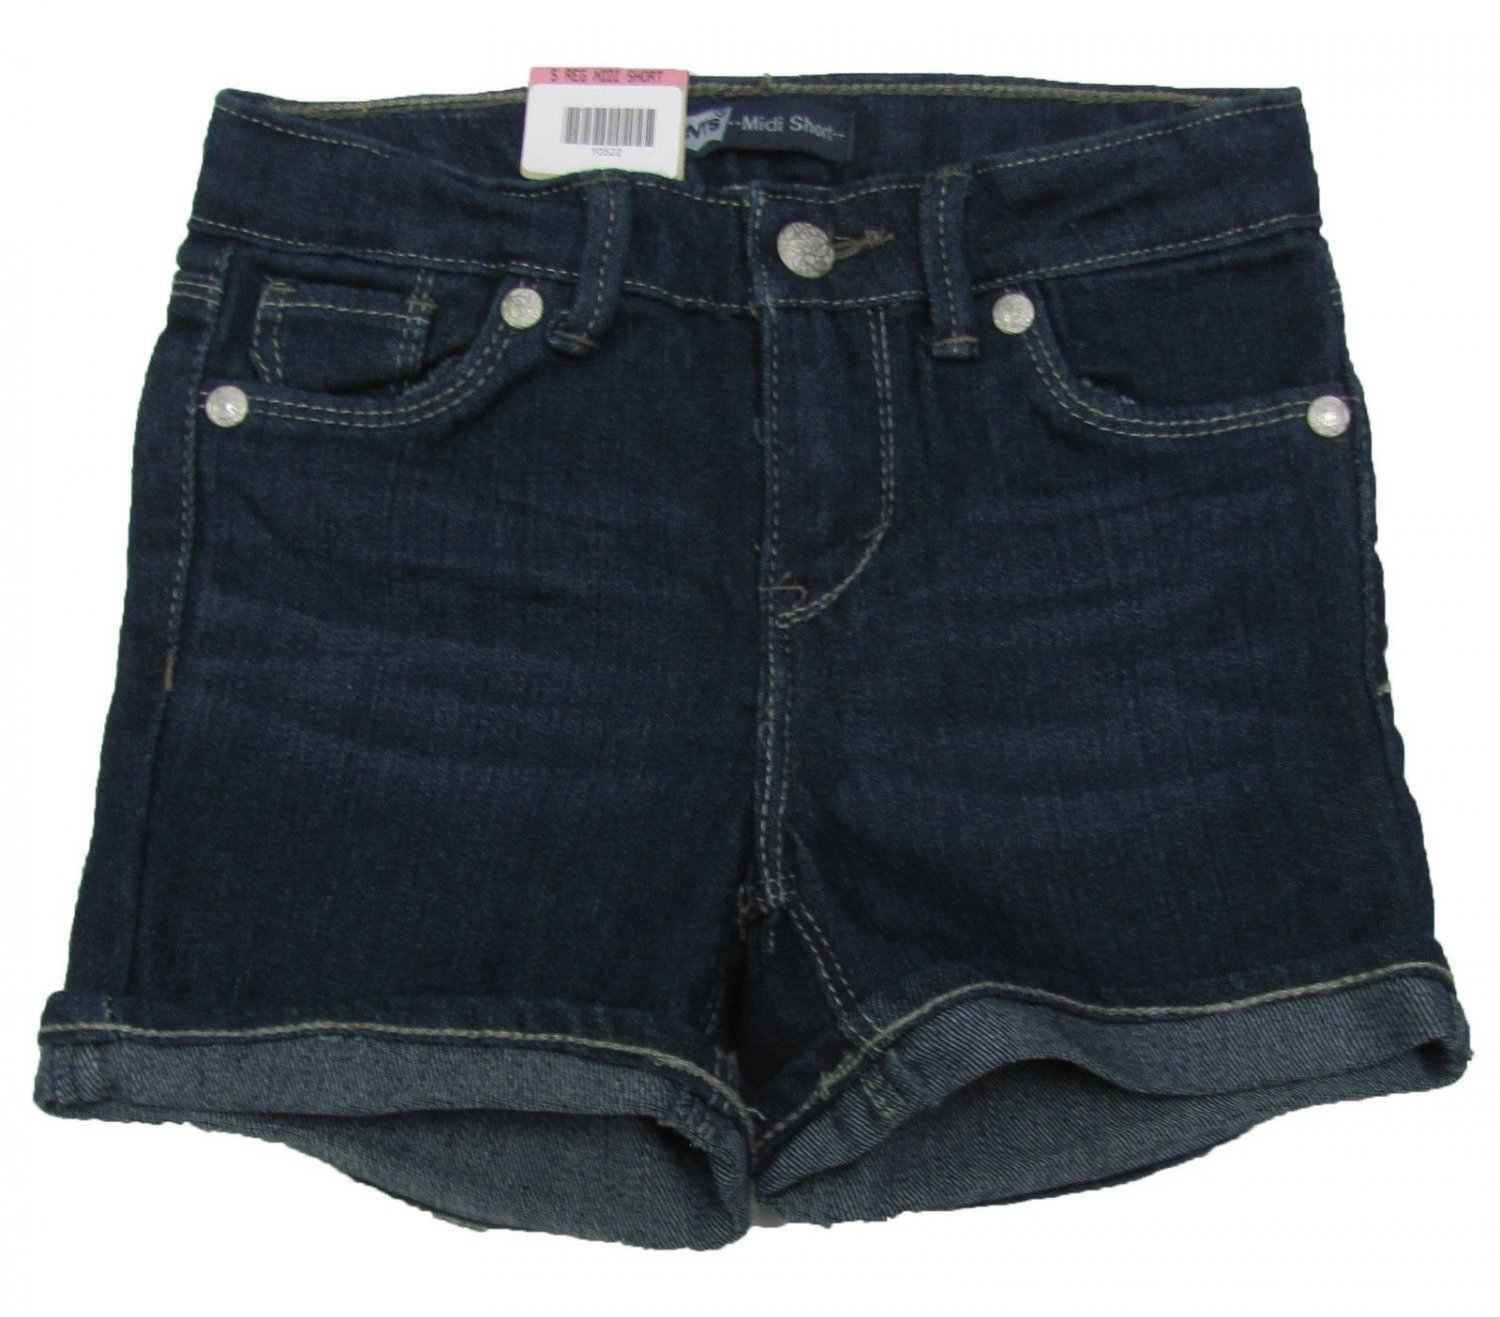 Levis Girls size 6X Dark Blue Midi Short Mid-length Shorts with Adjustable Waistband New Levi's